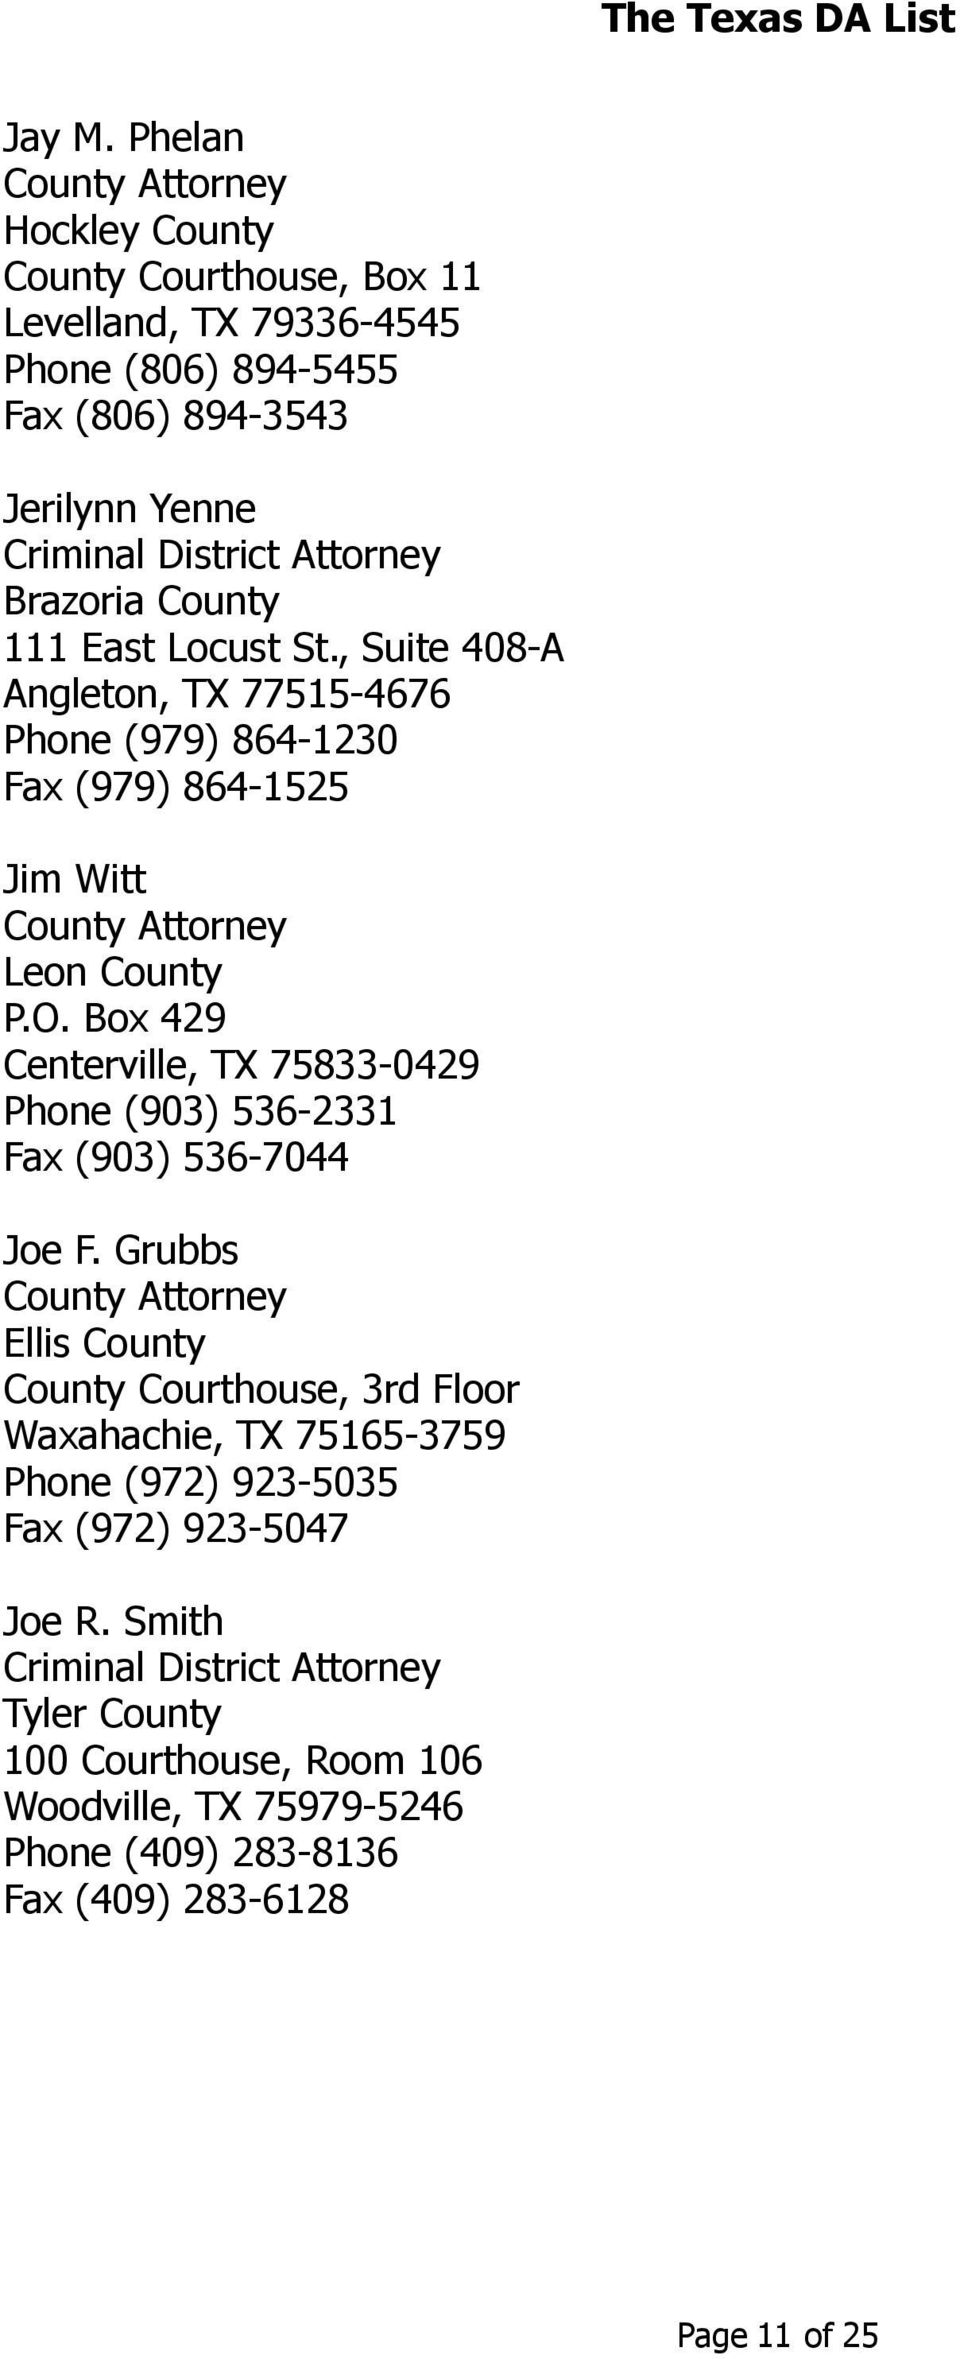 East Locust St., Suite 408-A Angleton, TX 77515-4676 Phone (979) 864-1230 Fax (979) 864-1525 Jim Witt Leon County P.O.